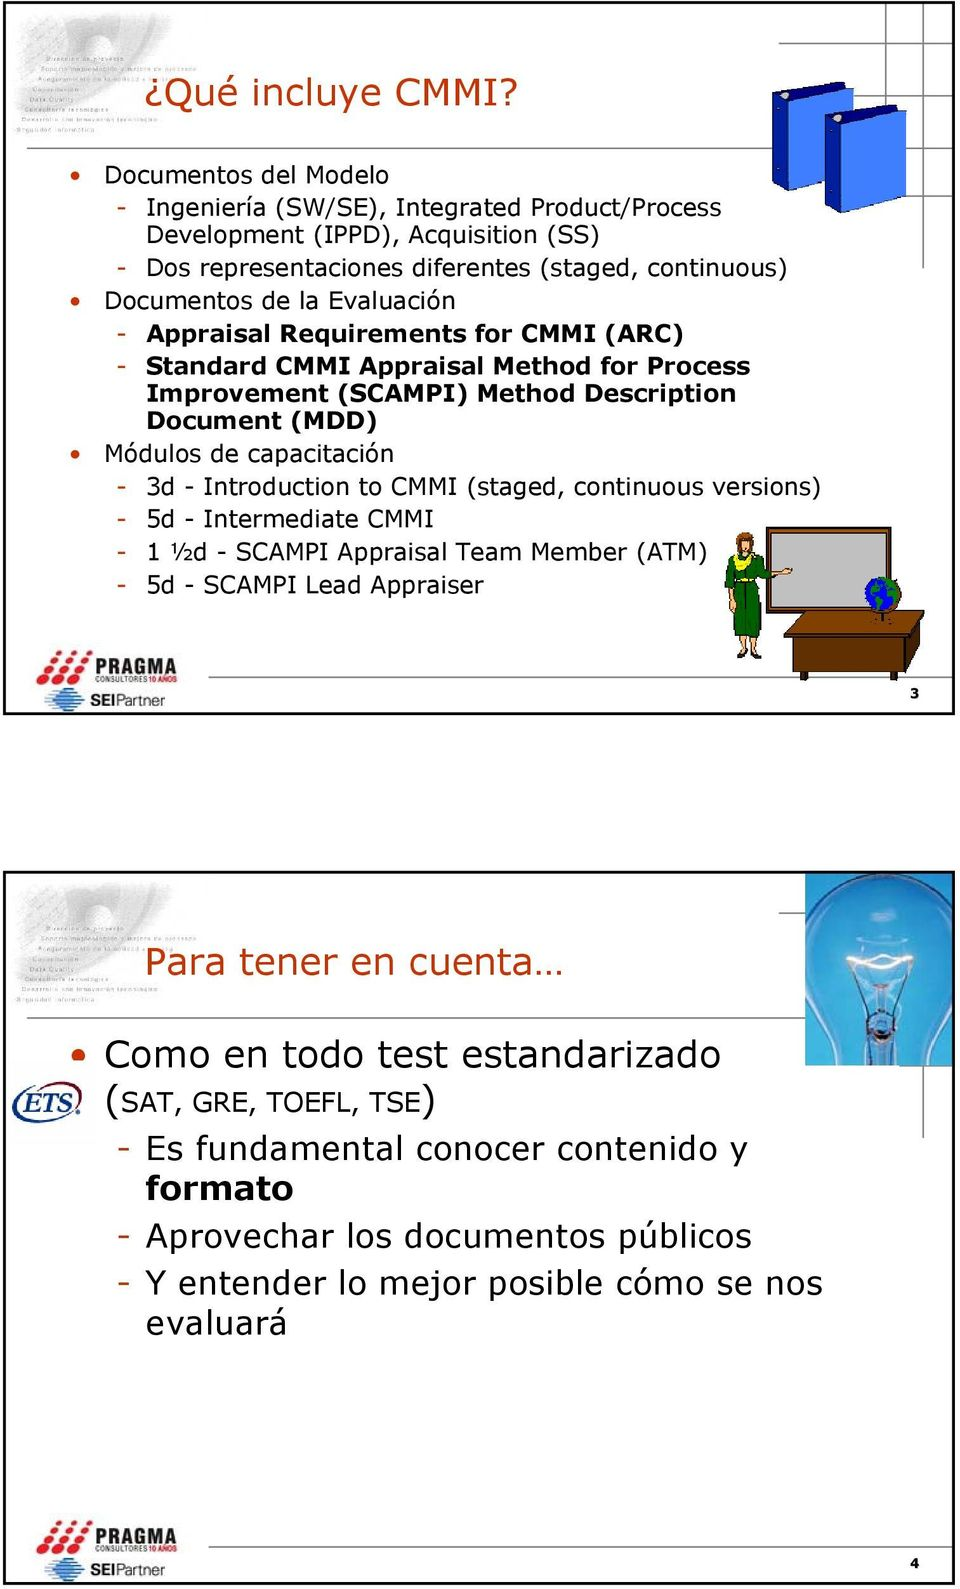 Evaluación - Appraisal Requirements for CMMI (ARC) - Standard CMMI Appraisal Method for Process Improvement (SCAMPI) Method Description Document (MDD) Módulos de capacitación - 3d -